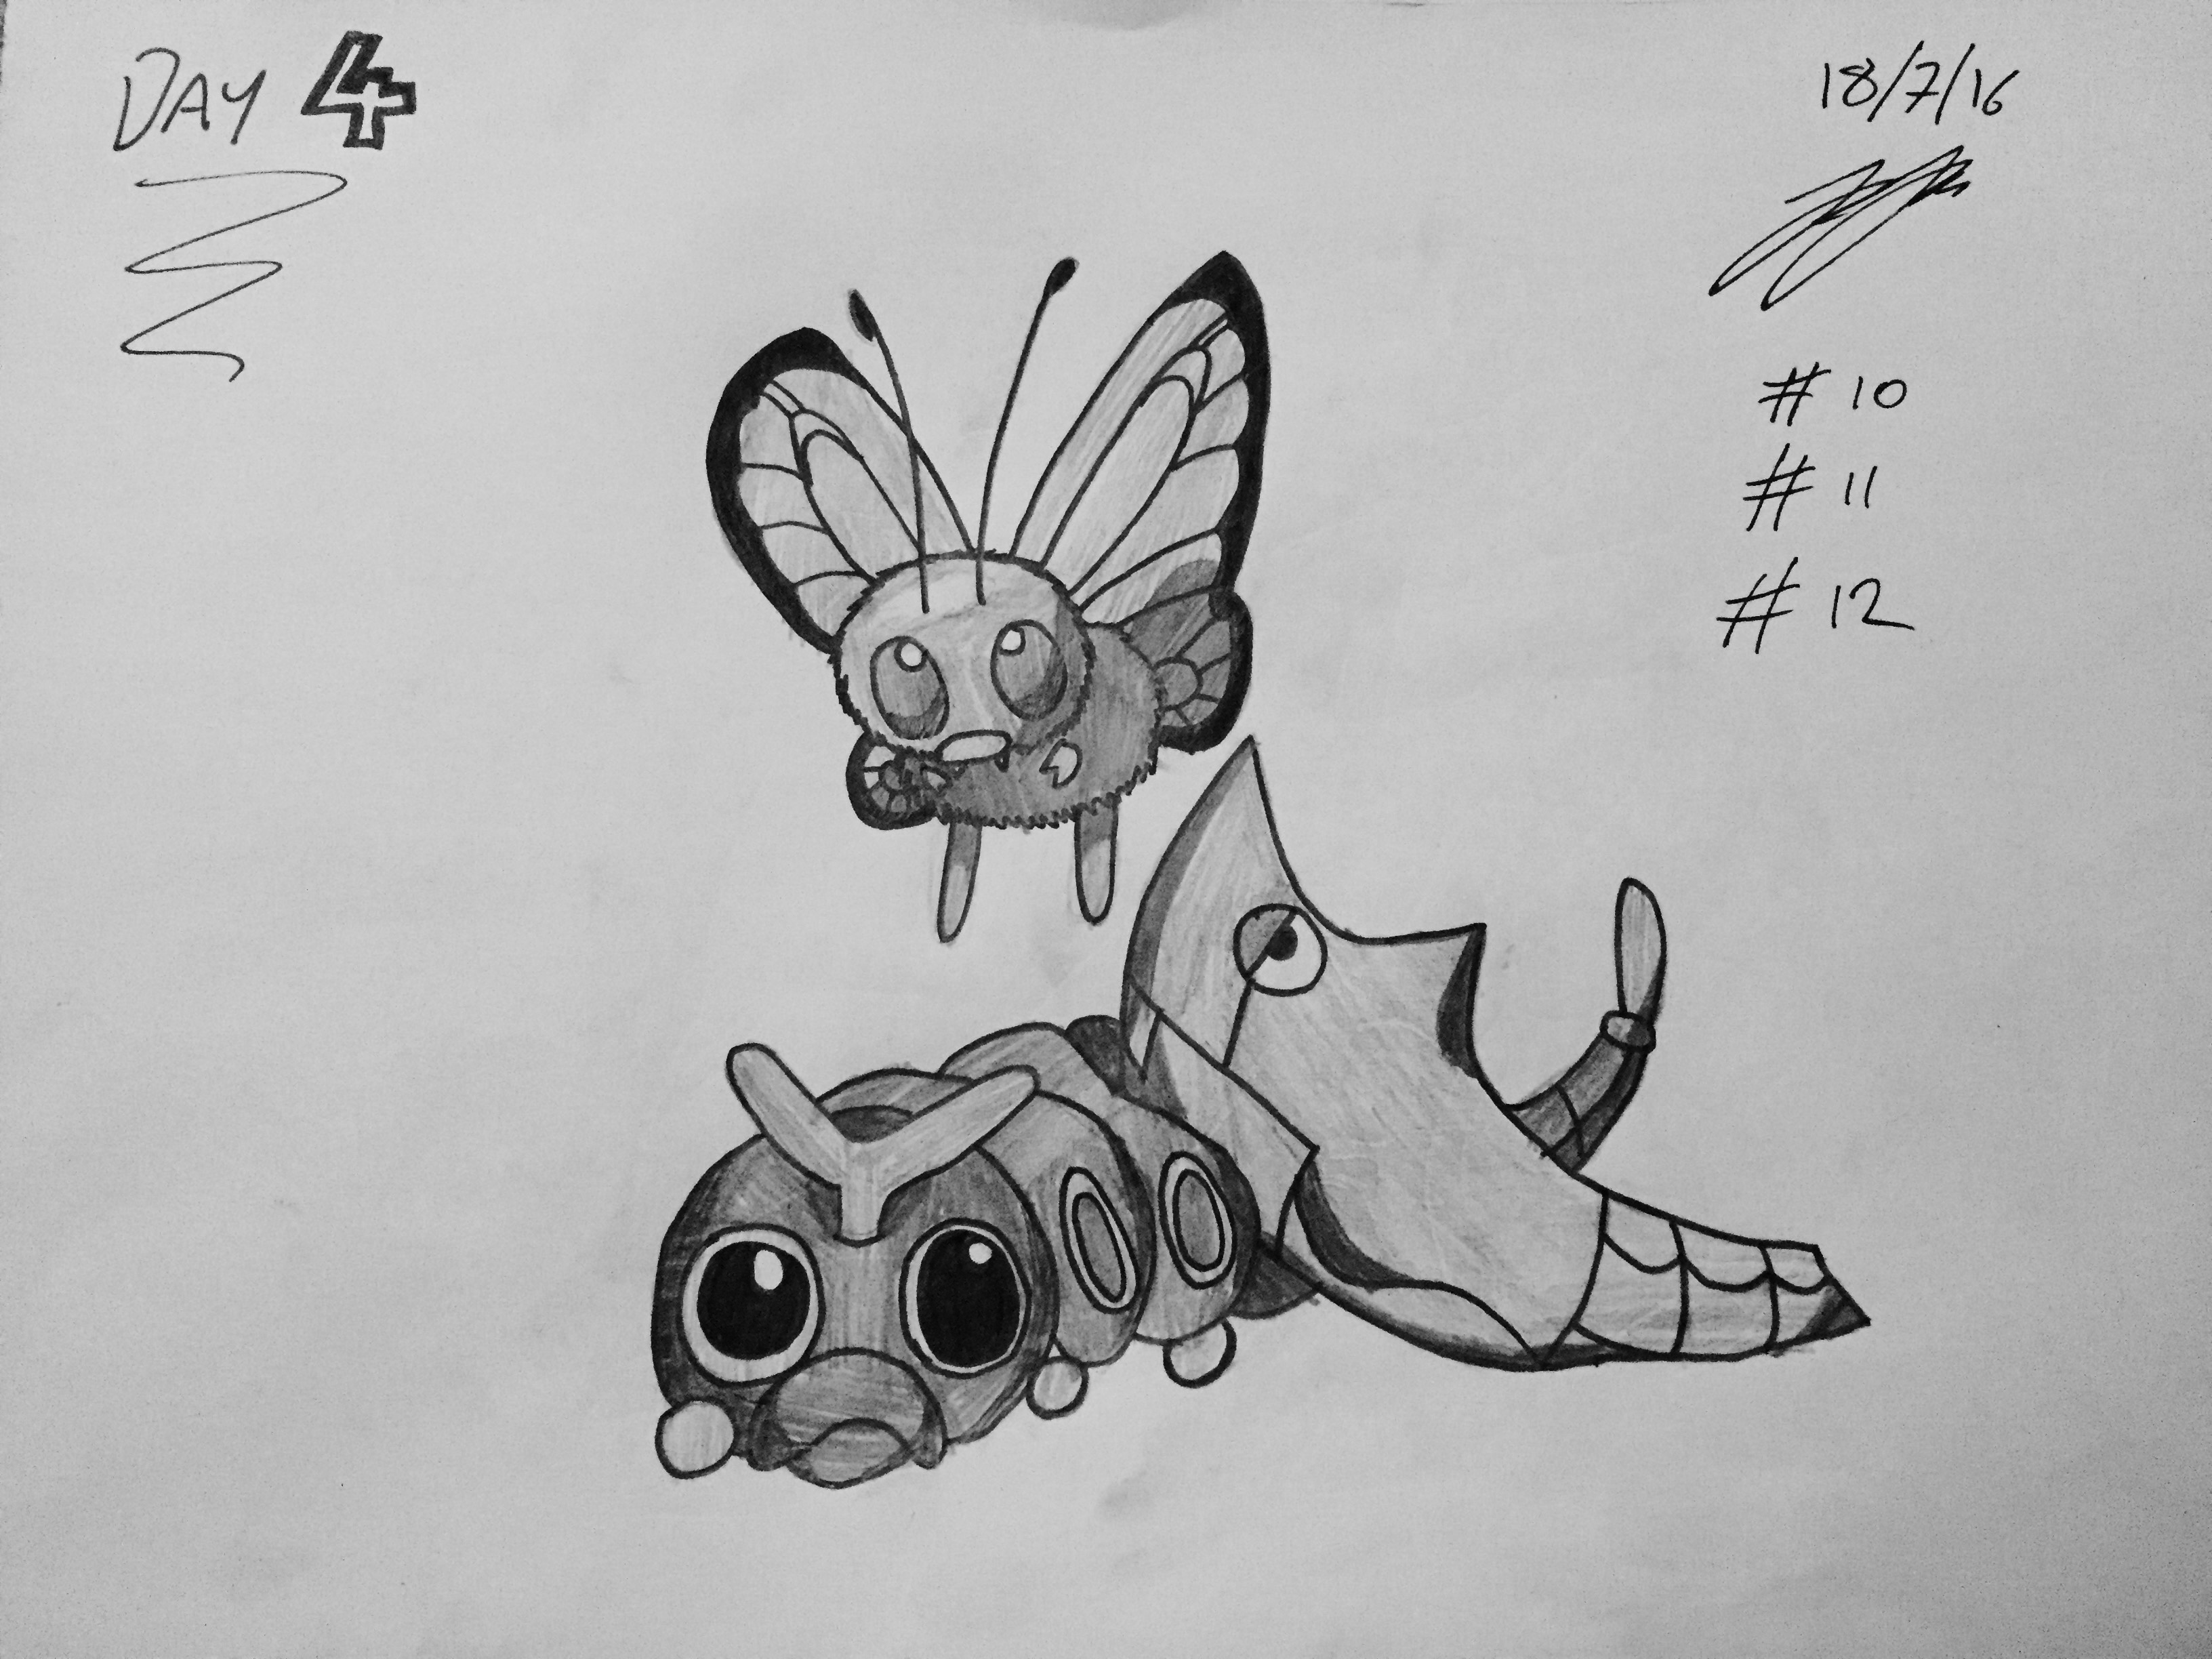 #10 Caterpie #11 Metapod #12 Butterfree